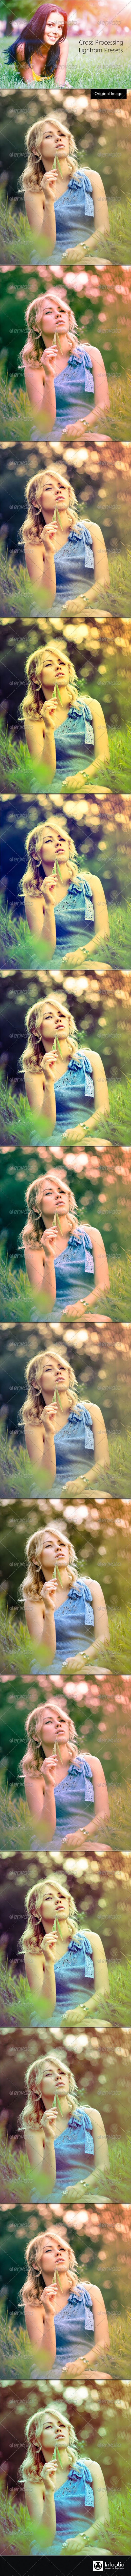 GraphicRiver Advanced Cross-Processing Lightroom Presets 4741584